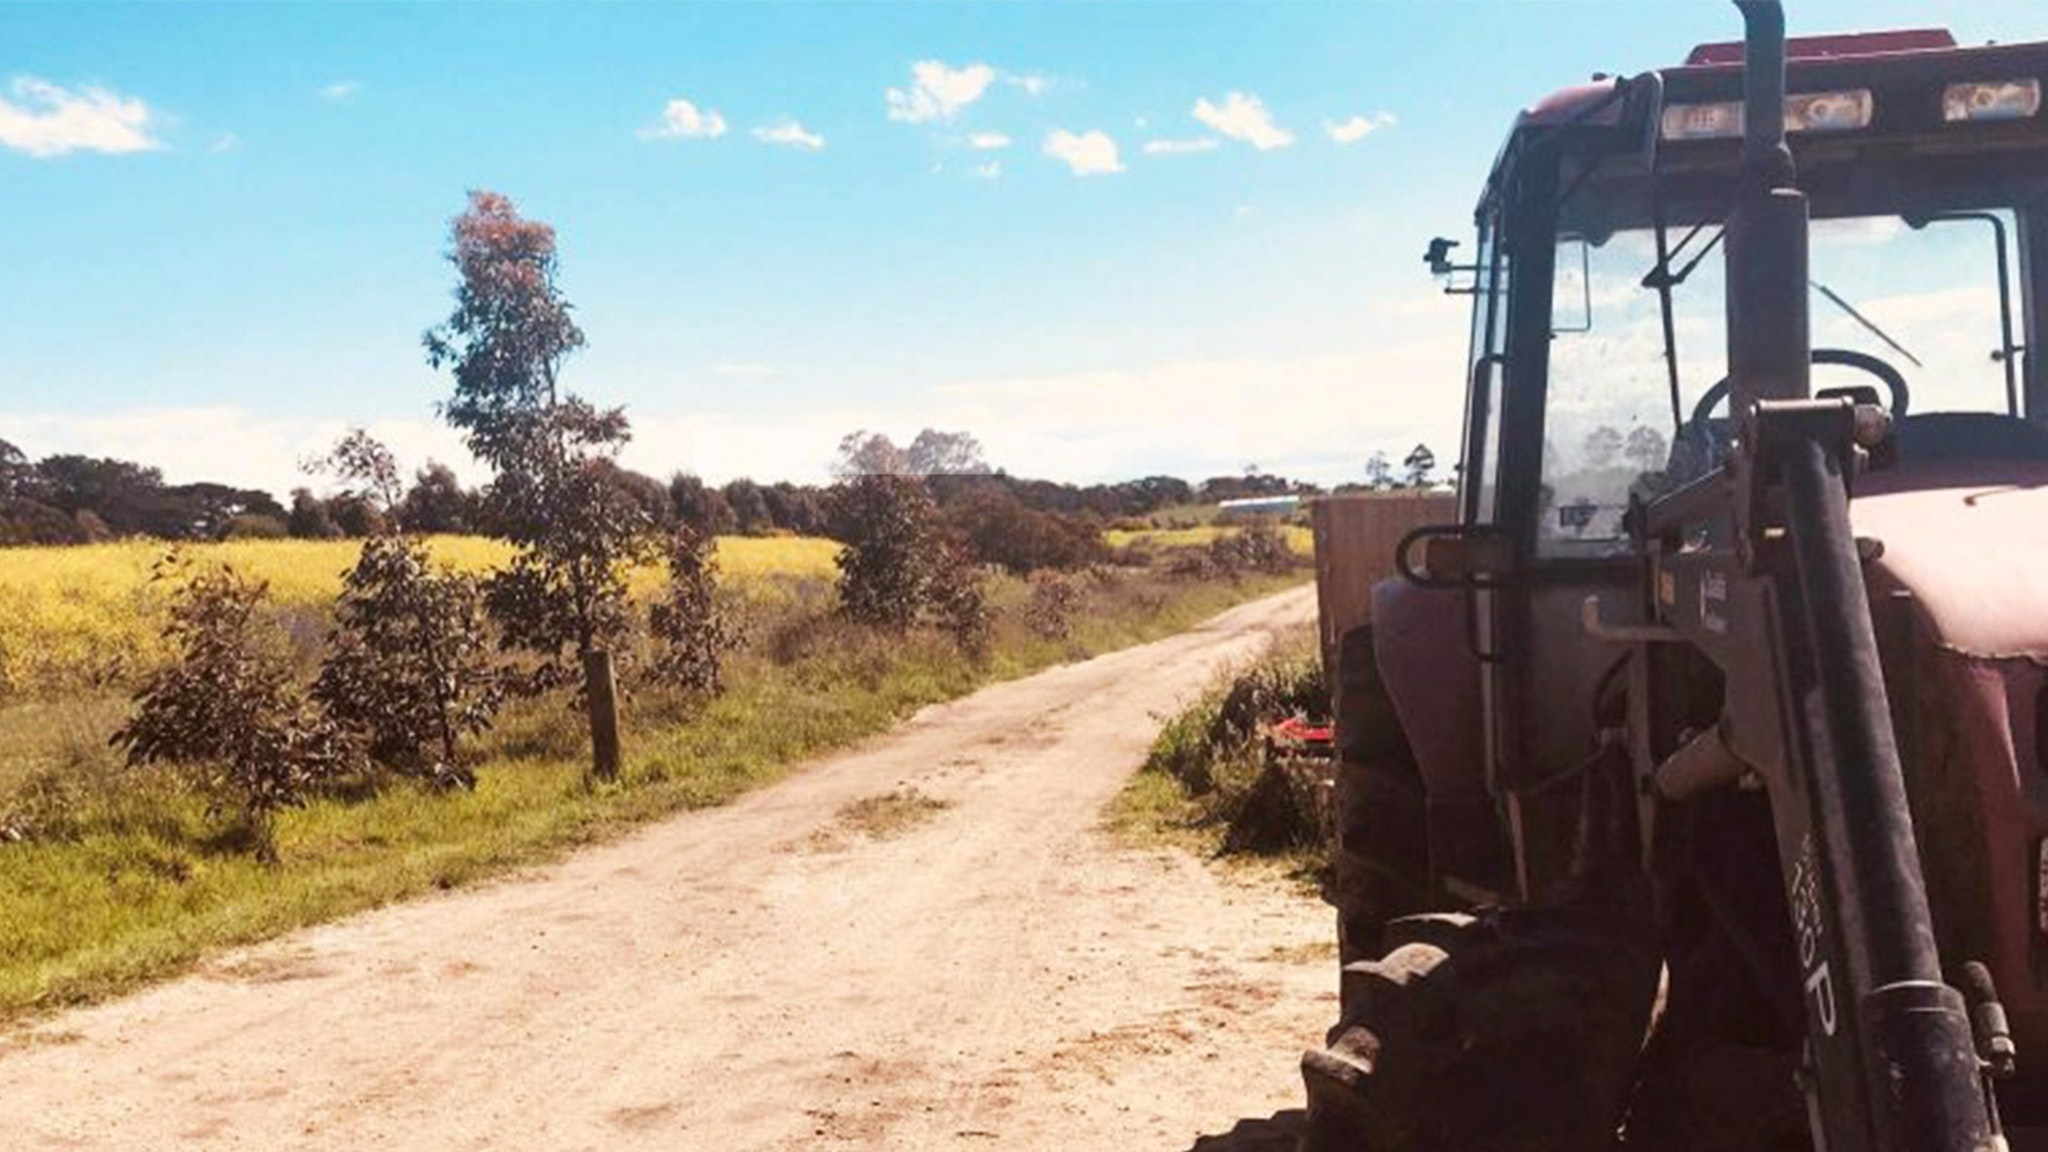 Harvest Hinterland - Follow the Harvest trail for a produce showcase tour